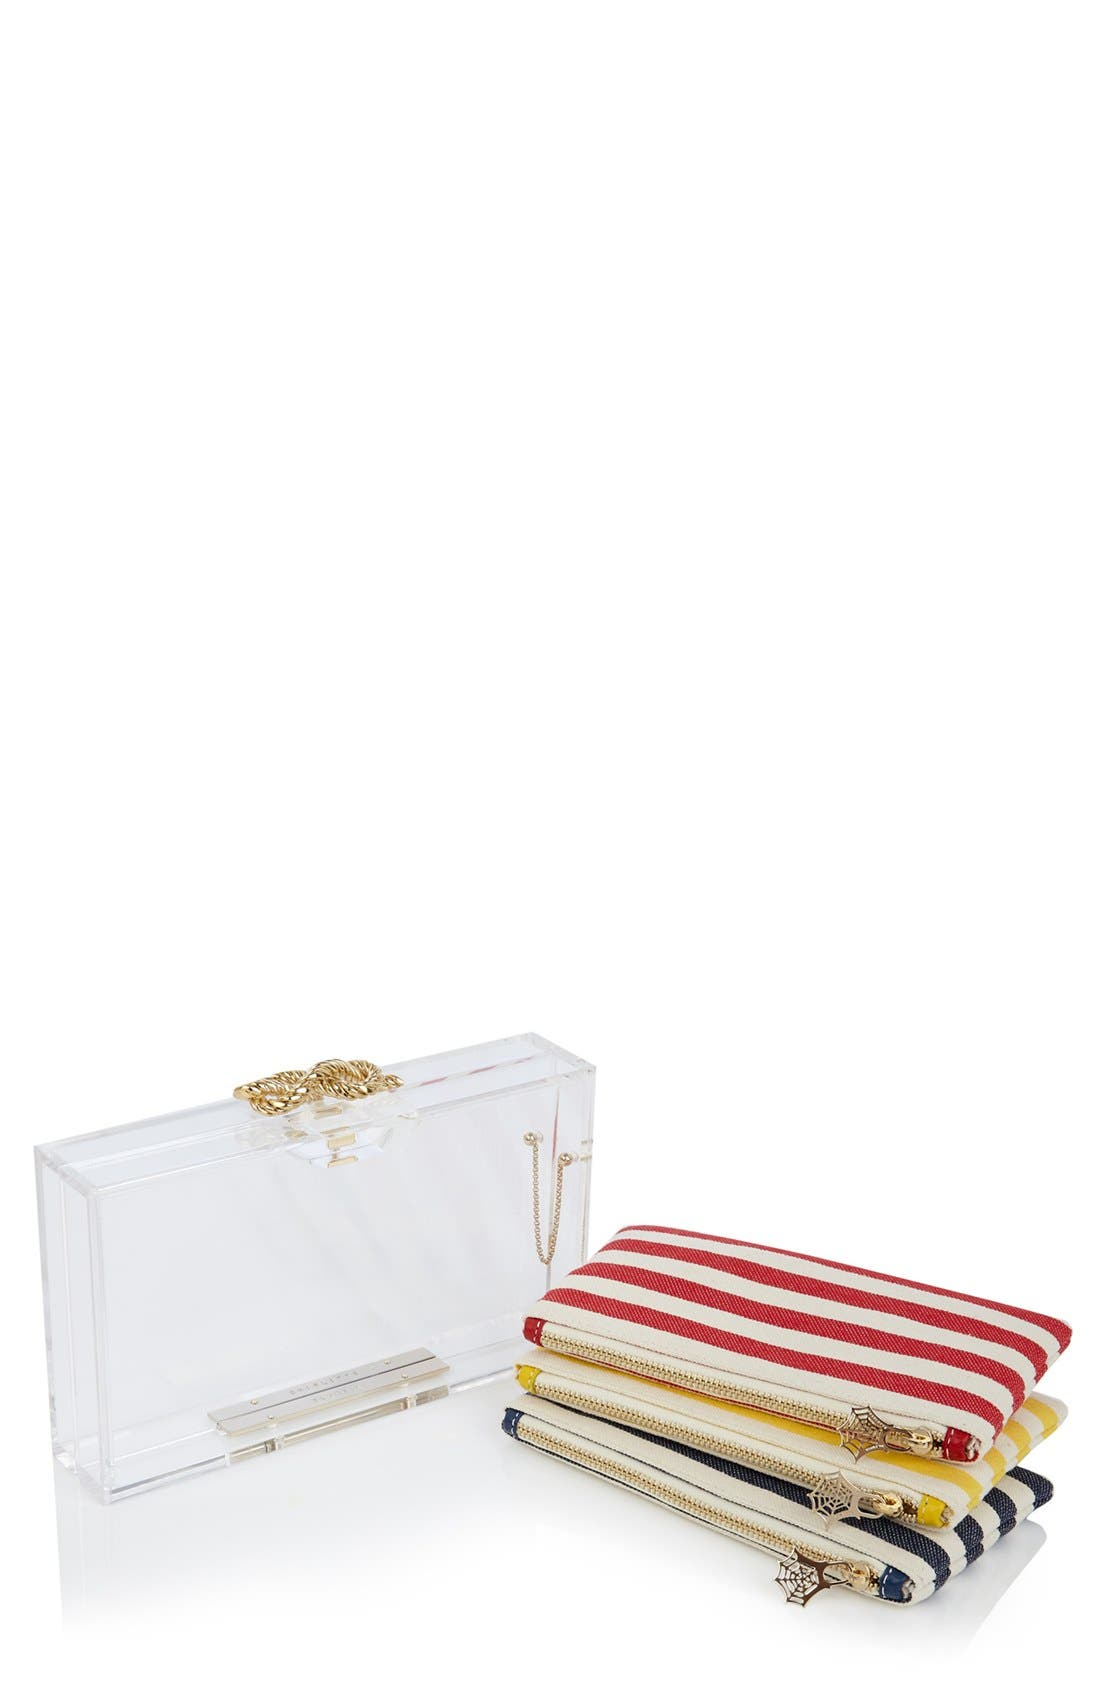 Alternate Image 1 Selected - Charlotte Olympia 'Pandora - Knot' Clutch